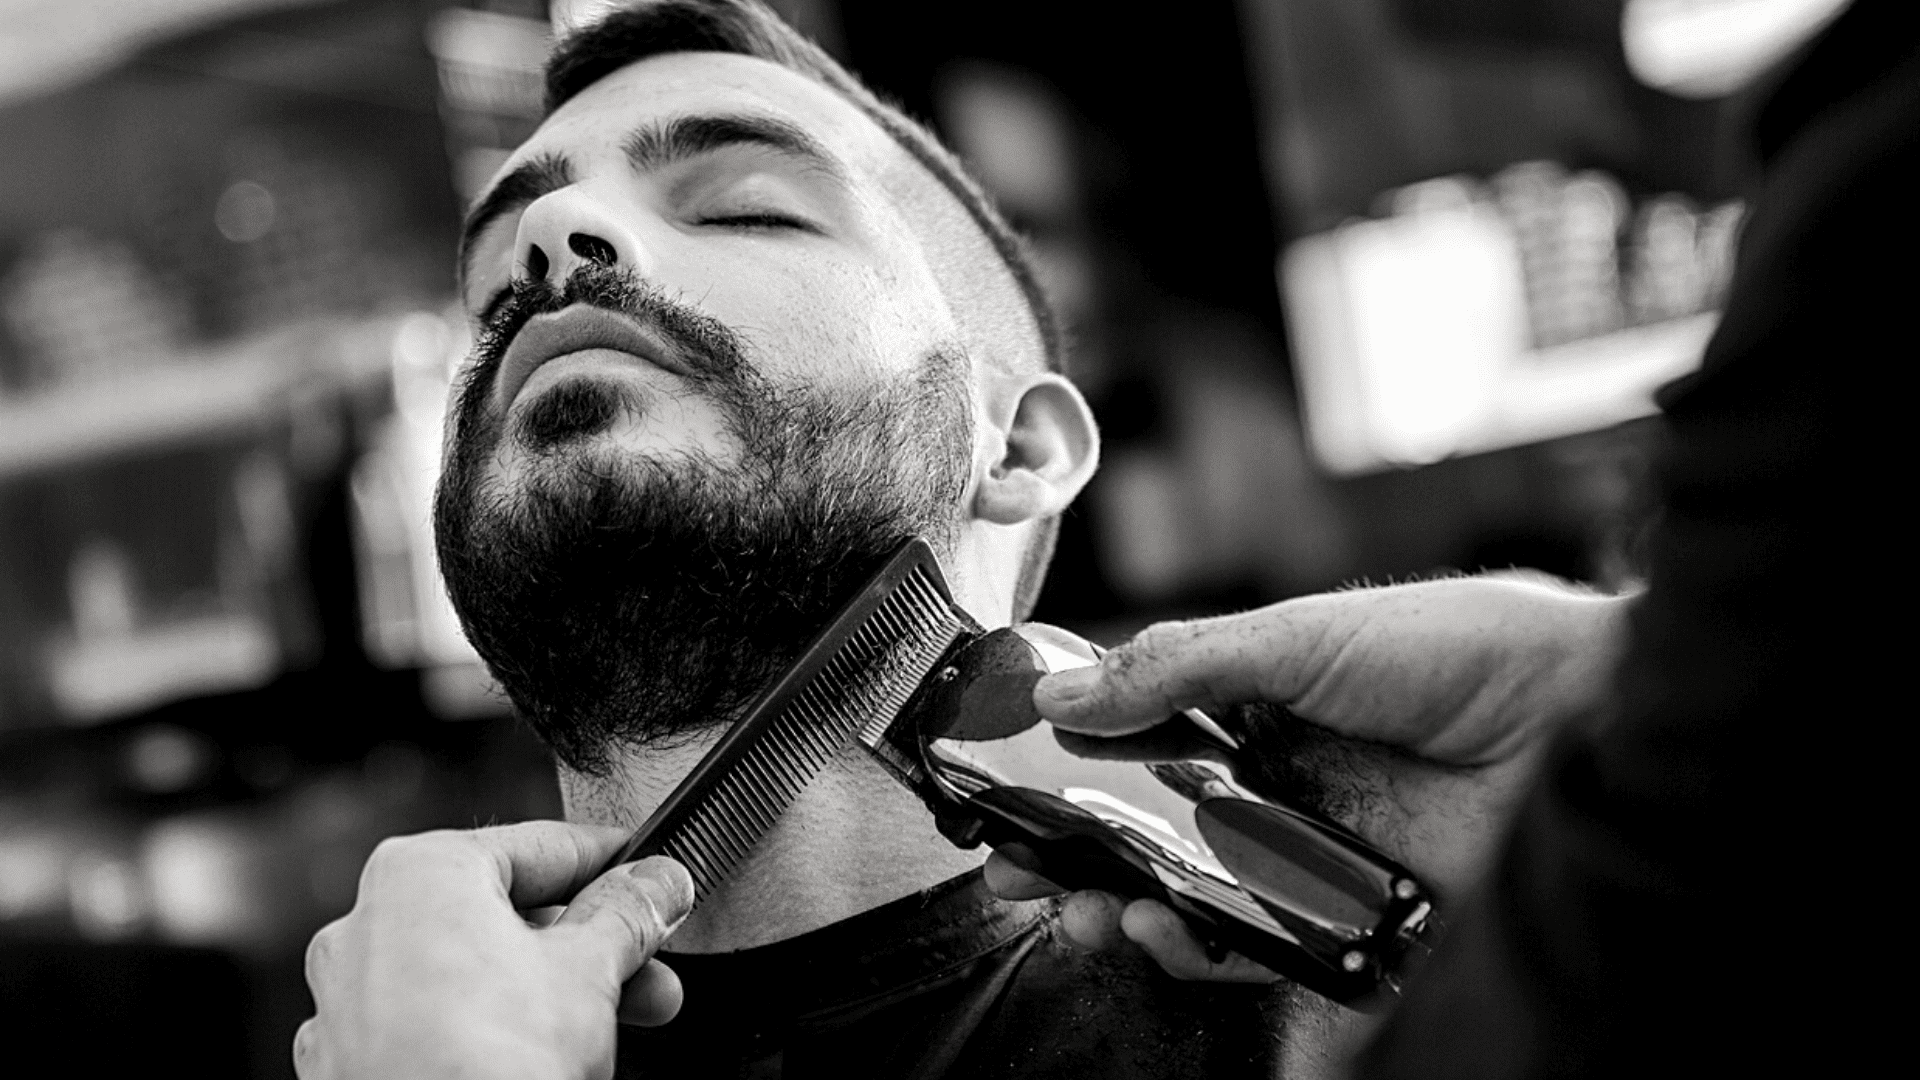 One of our men's grooming tips is to visit your barber every four weeks